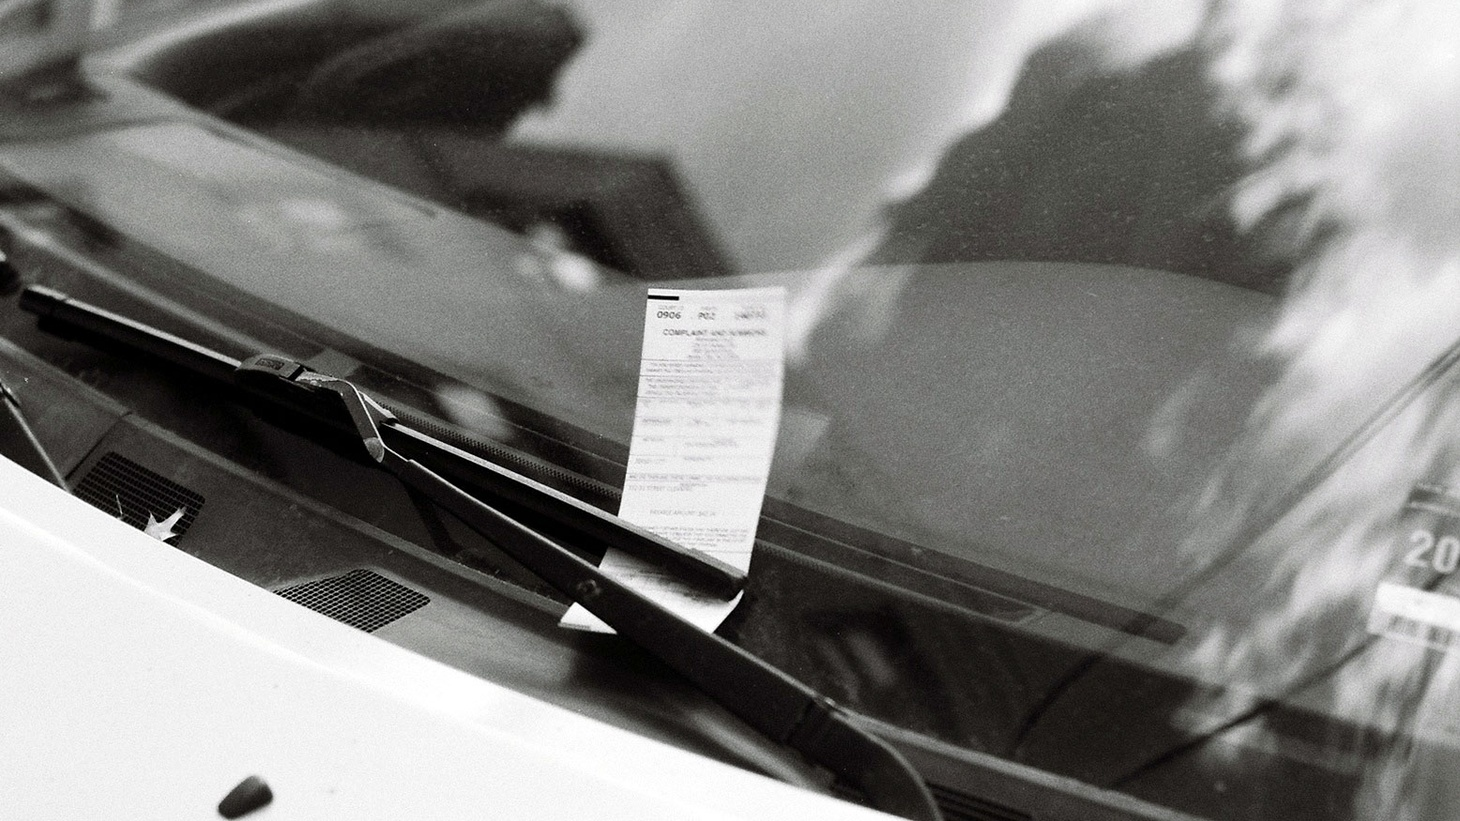 Parking tickets provided $161 million in revenue last year for the Los Angeles. As City Hall studies the issue, will voters get a chance to decide?